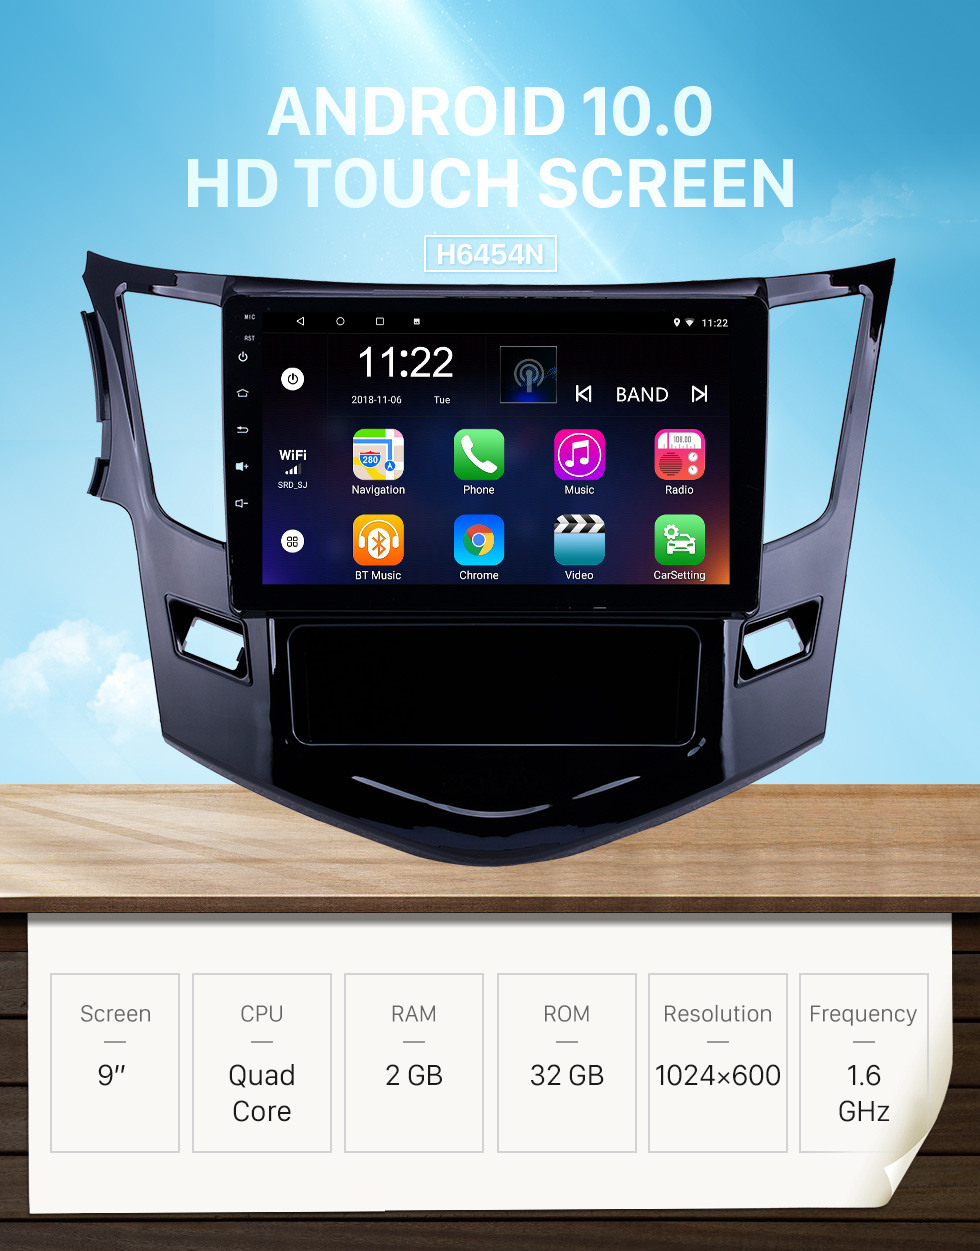 Seicane HD Touchscreen 9 inch Android 10.0 GPS Navigation Radio for 2012-2016 BYD Surui with Bluetooth AUX WIFI support Carplay TPMS DAB+